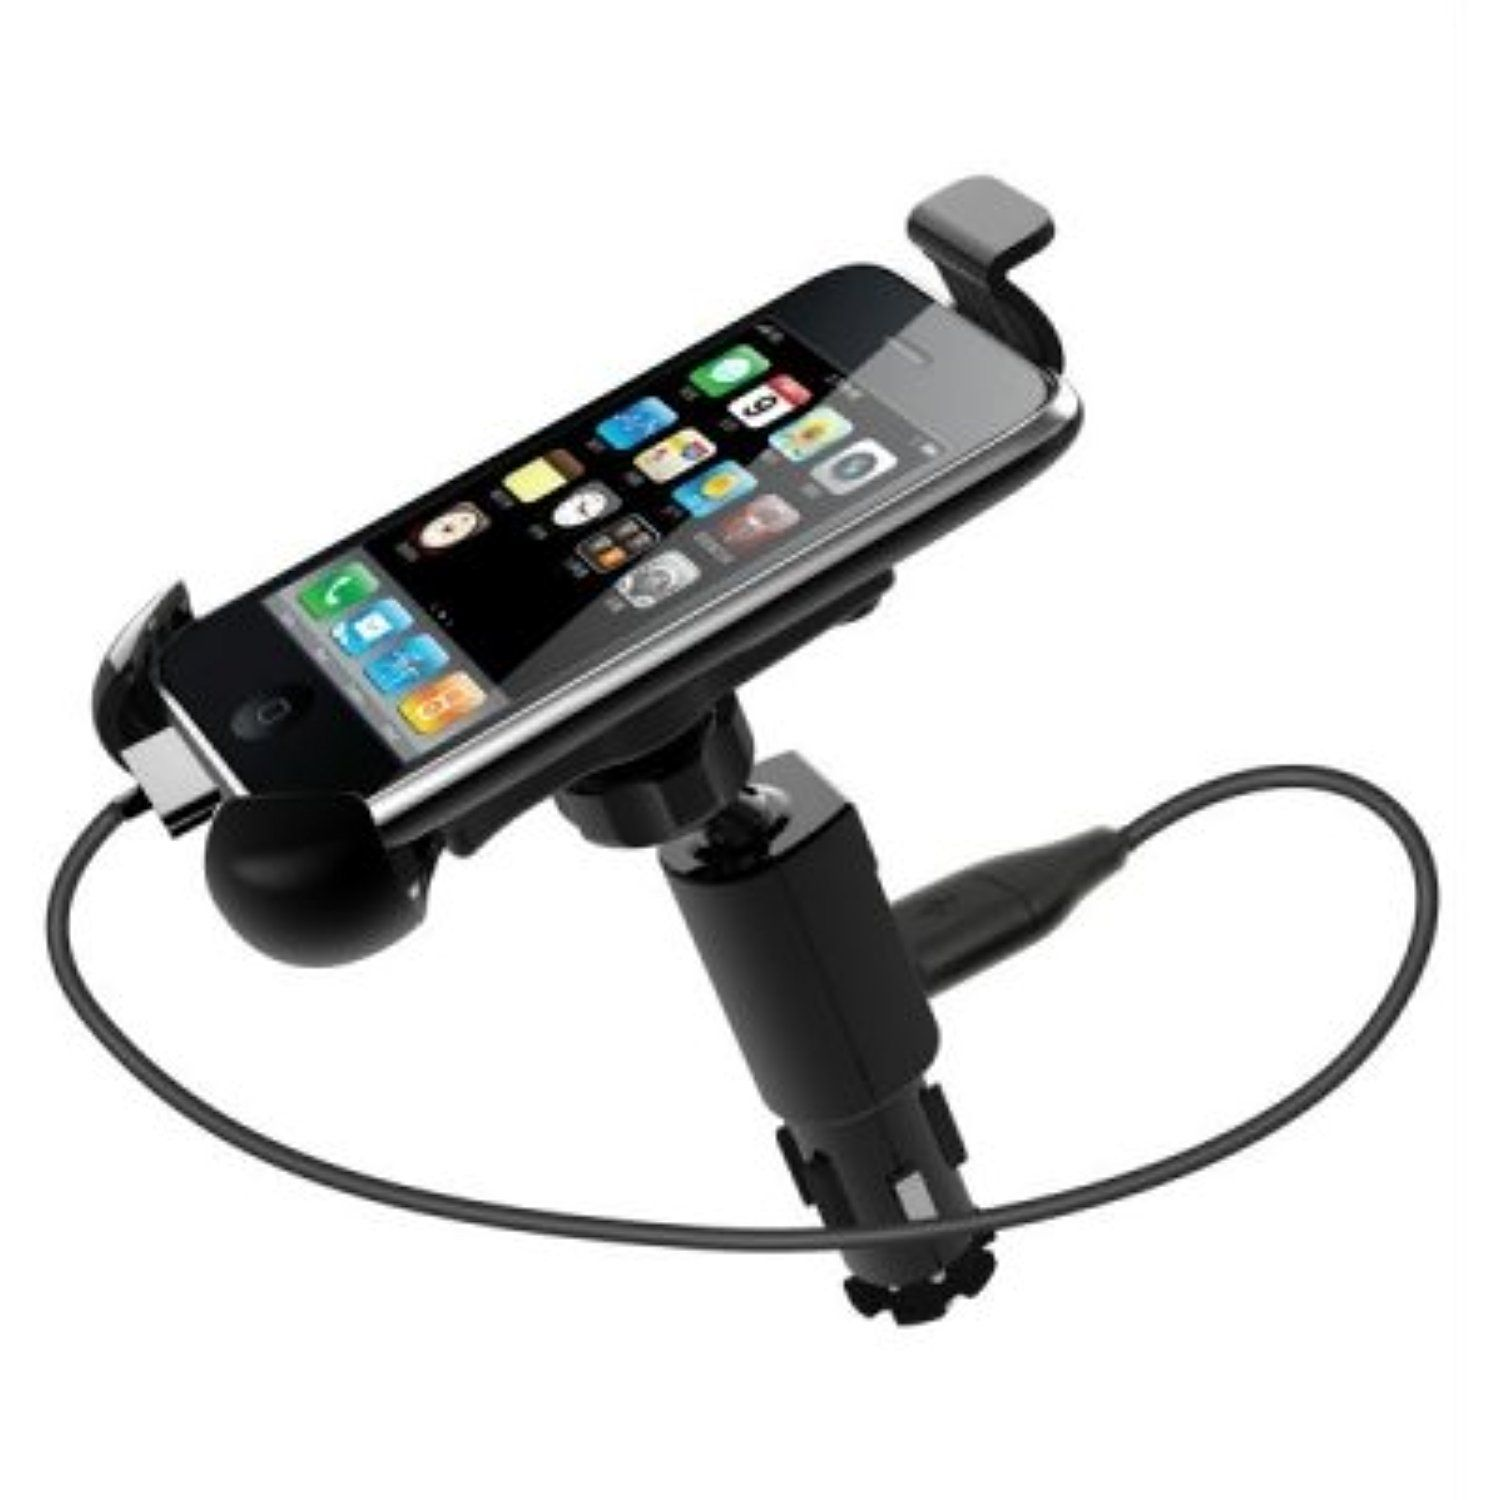 car gadgets 360 degree rotary universal car mounter holder cigarette lighter charger for smart phone black click image to review more details  [ 1500 x 1500 Pixel ]